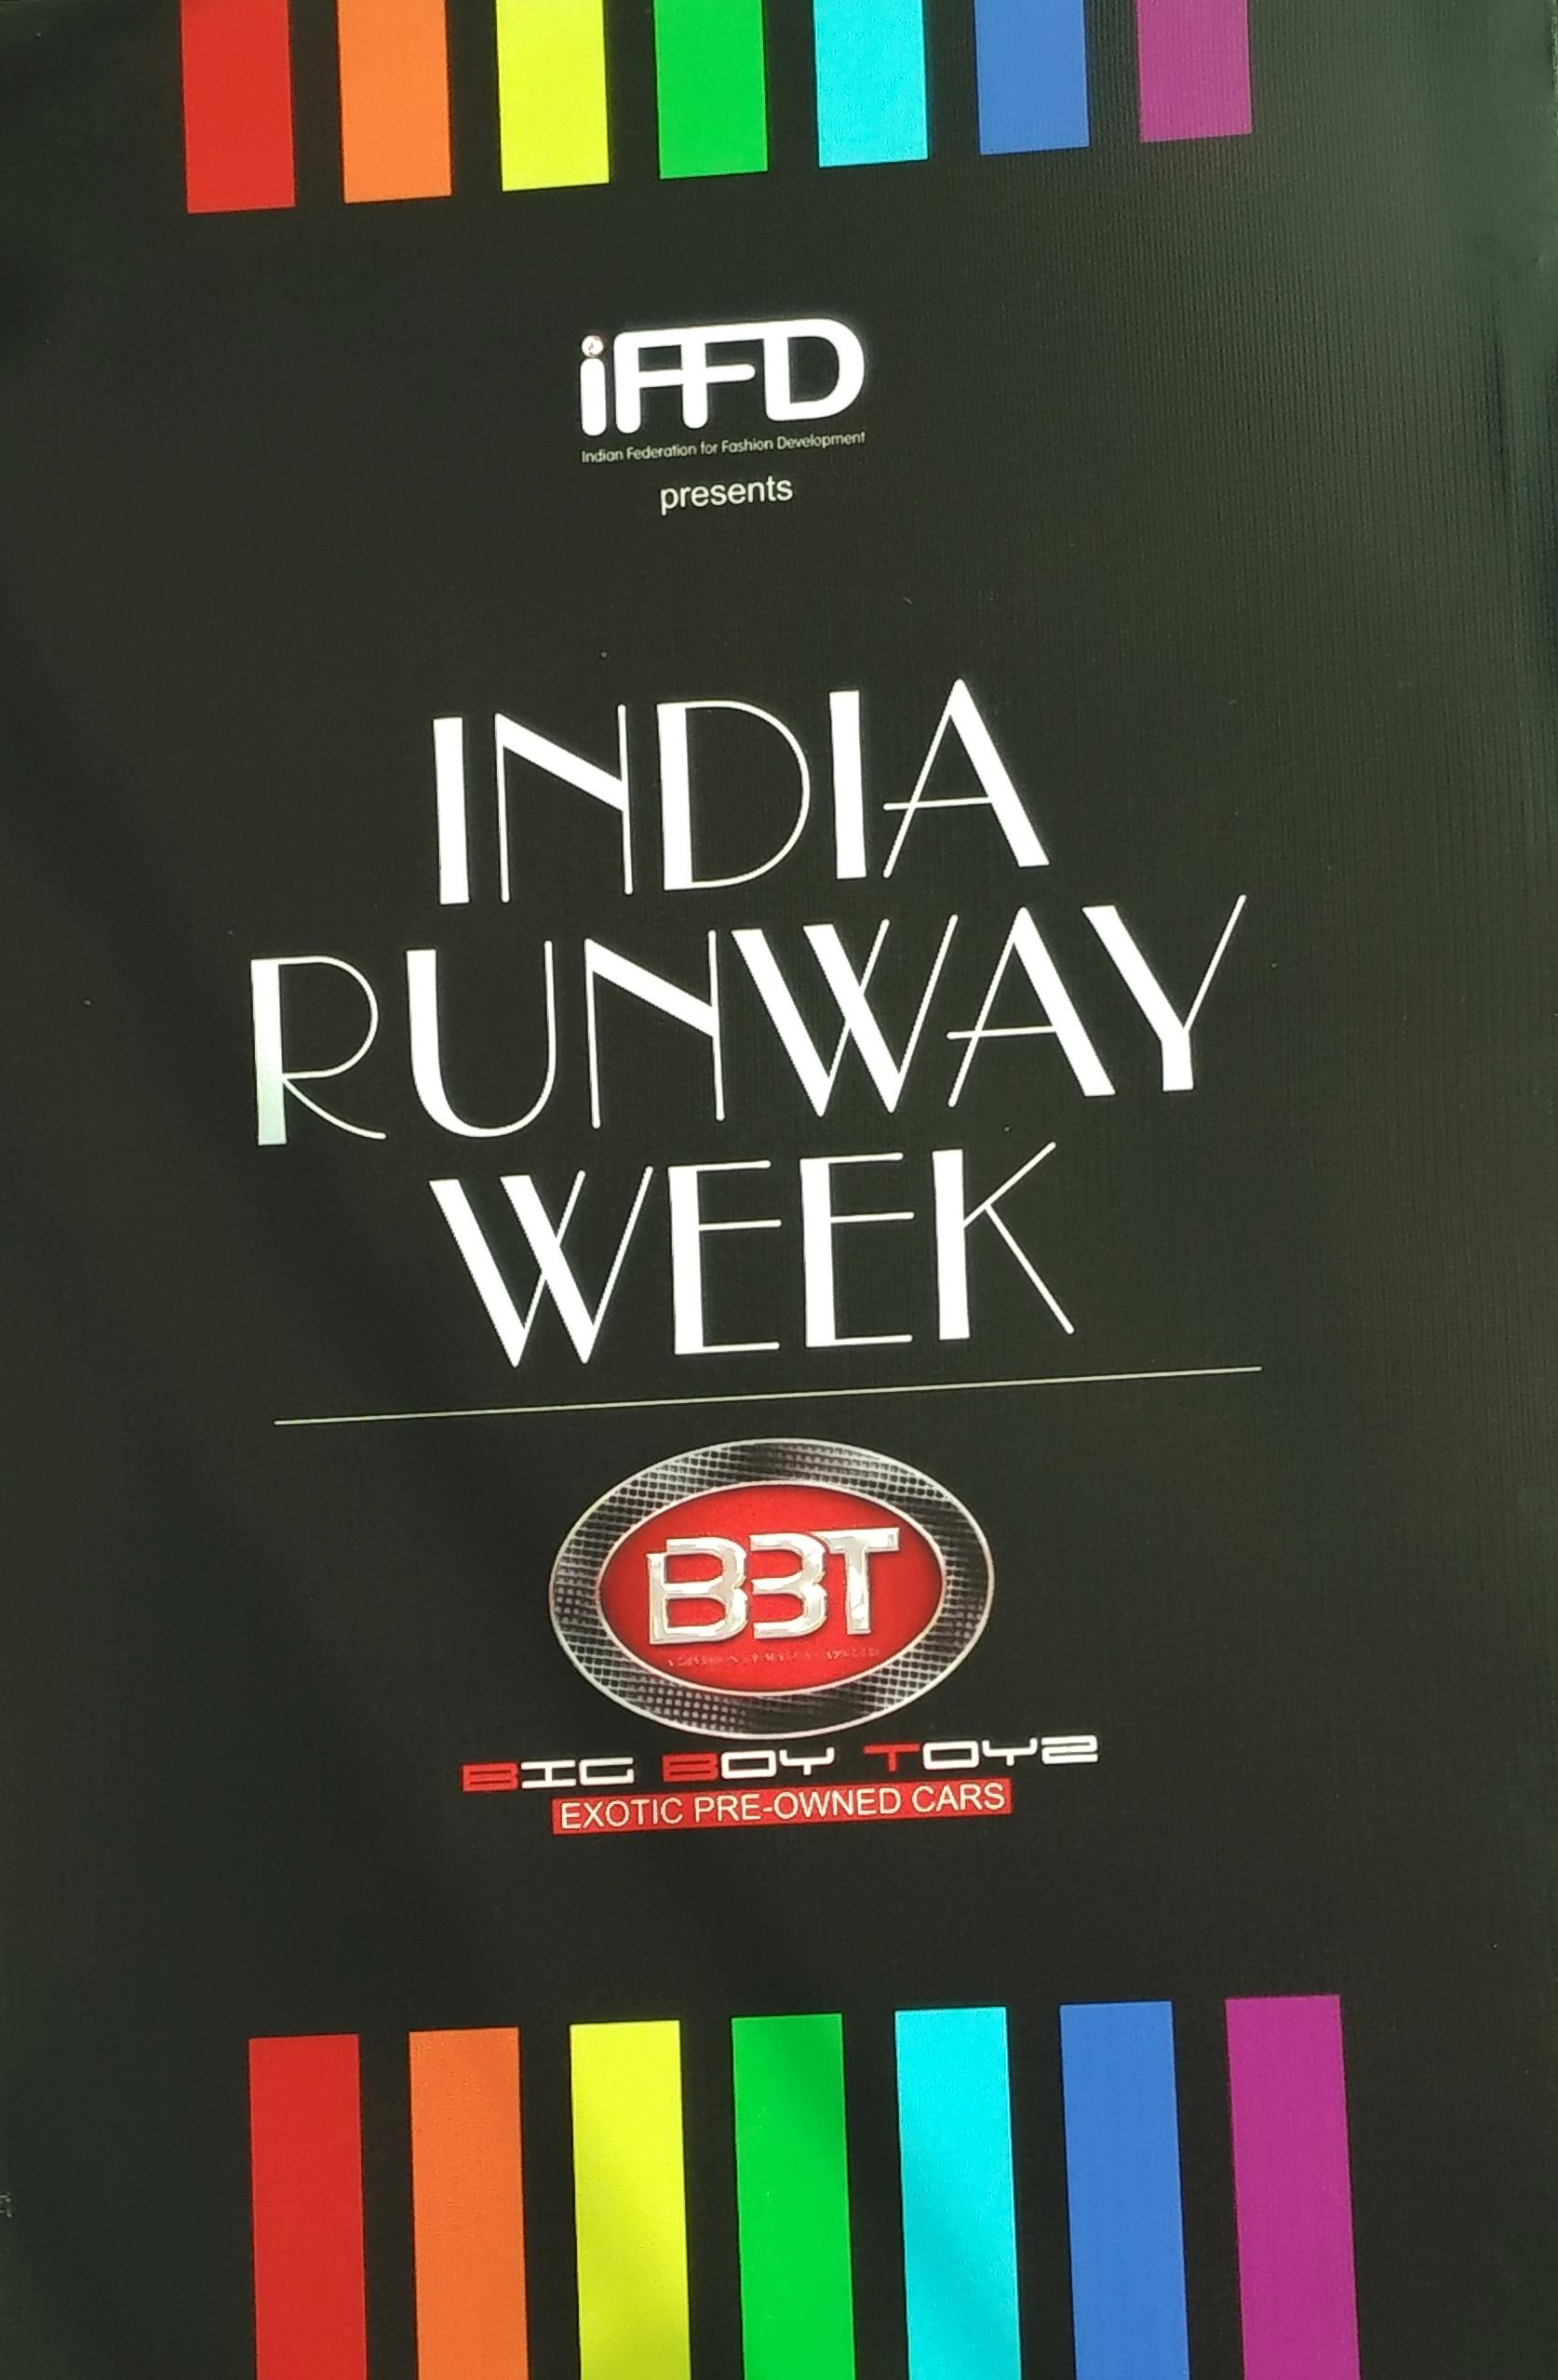 Iffd India Runway Week